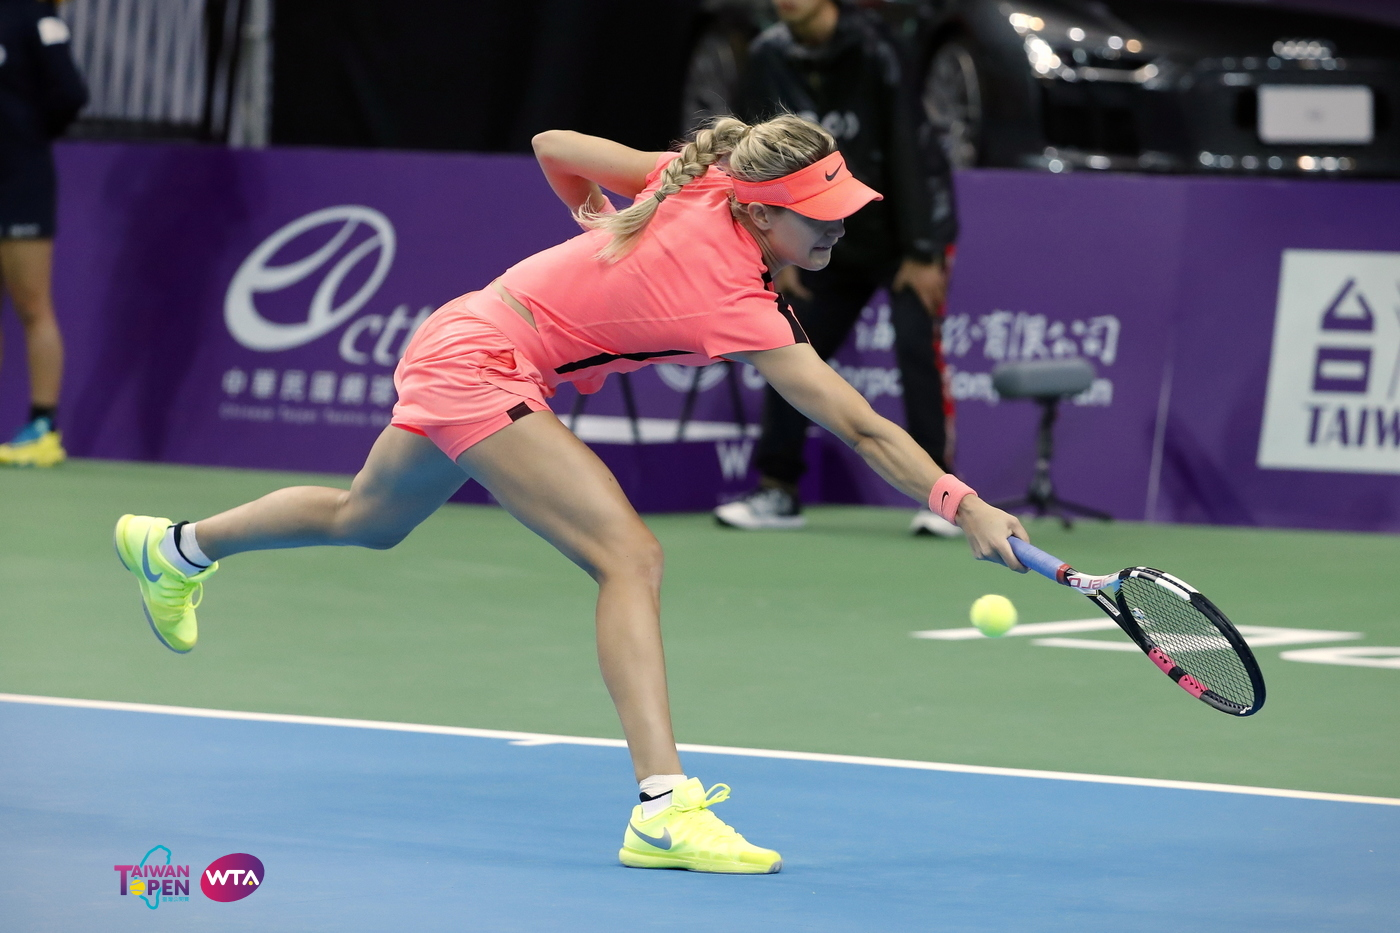 [CENTER COURT]02/02 EUGENIE BOUCHARD(CAN) vs. YAFAN WANG(CHN) 2018 臺灣公開賽 - 讓世界看見台灣 ( TAIWAN OPEN 2018 )